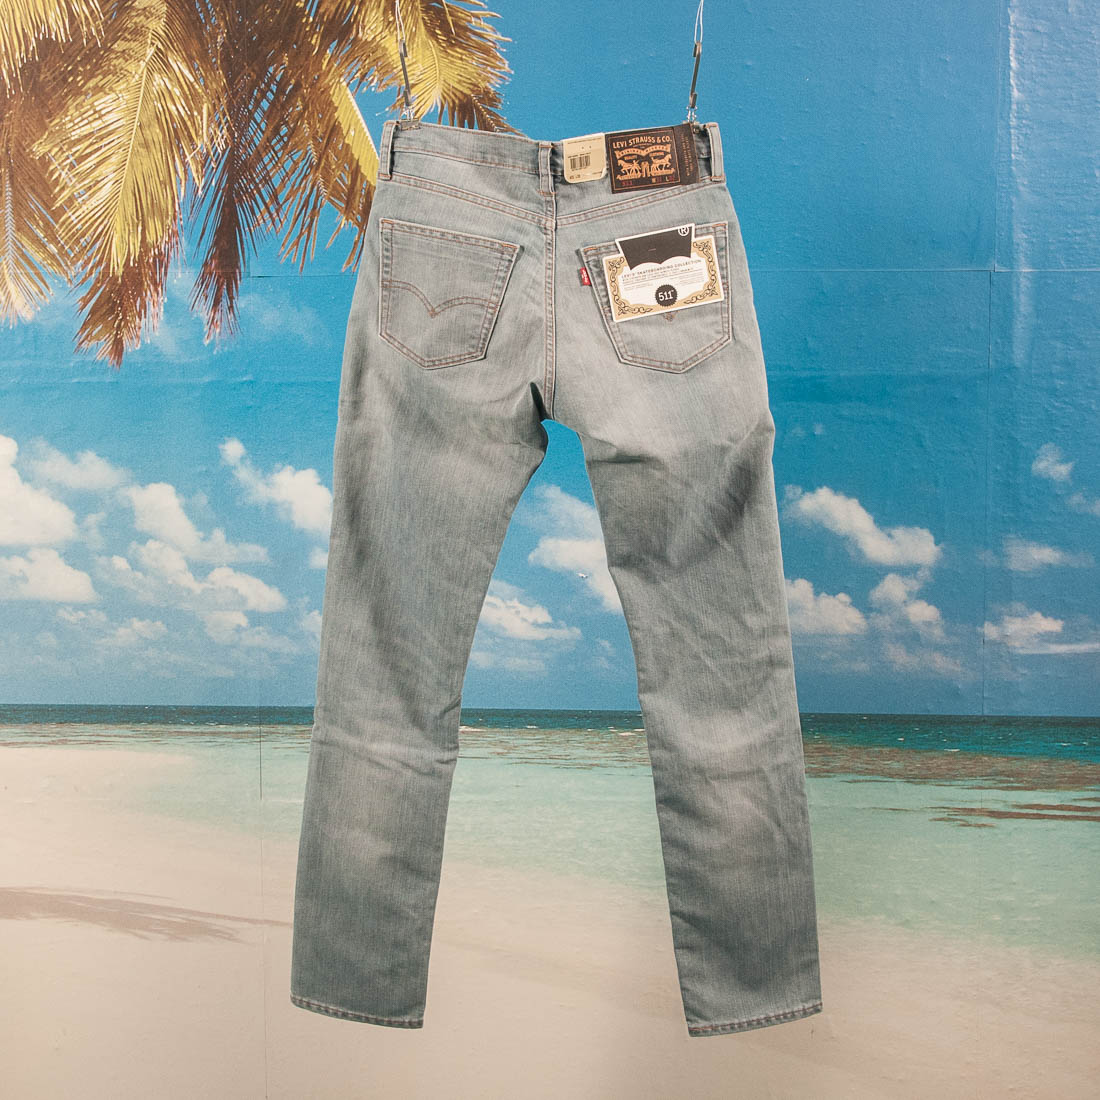 Levis Skateboarding - 511 Slim 5 Pocket S&E - Waller Blue